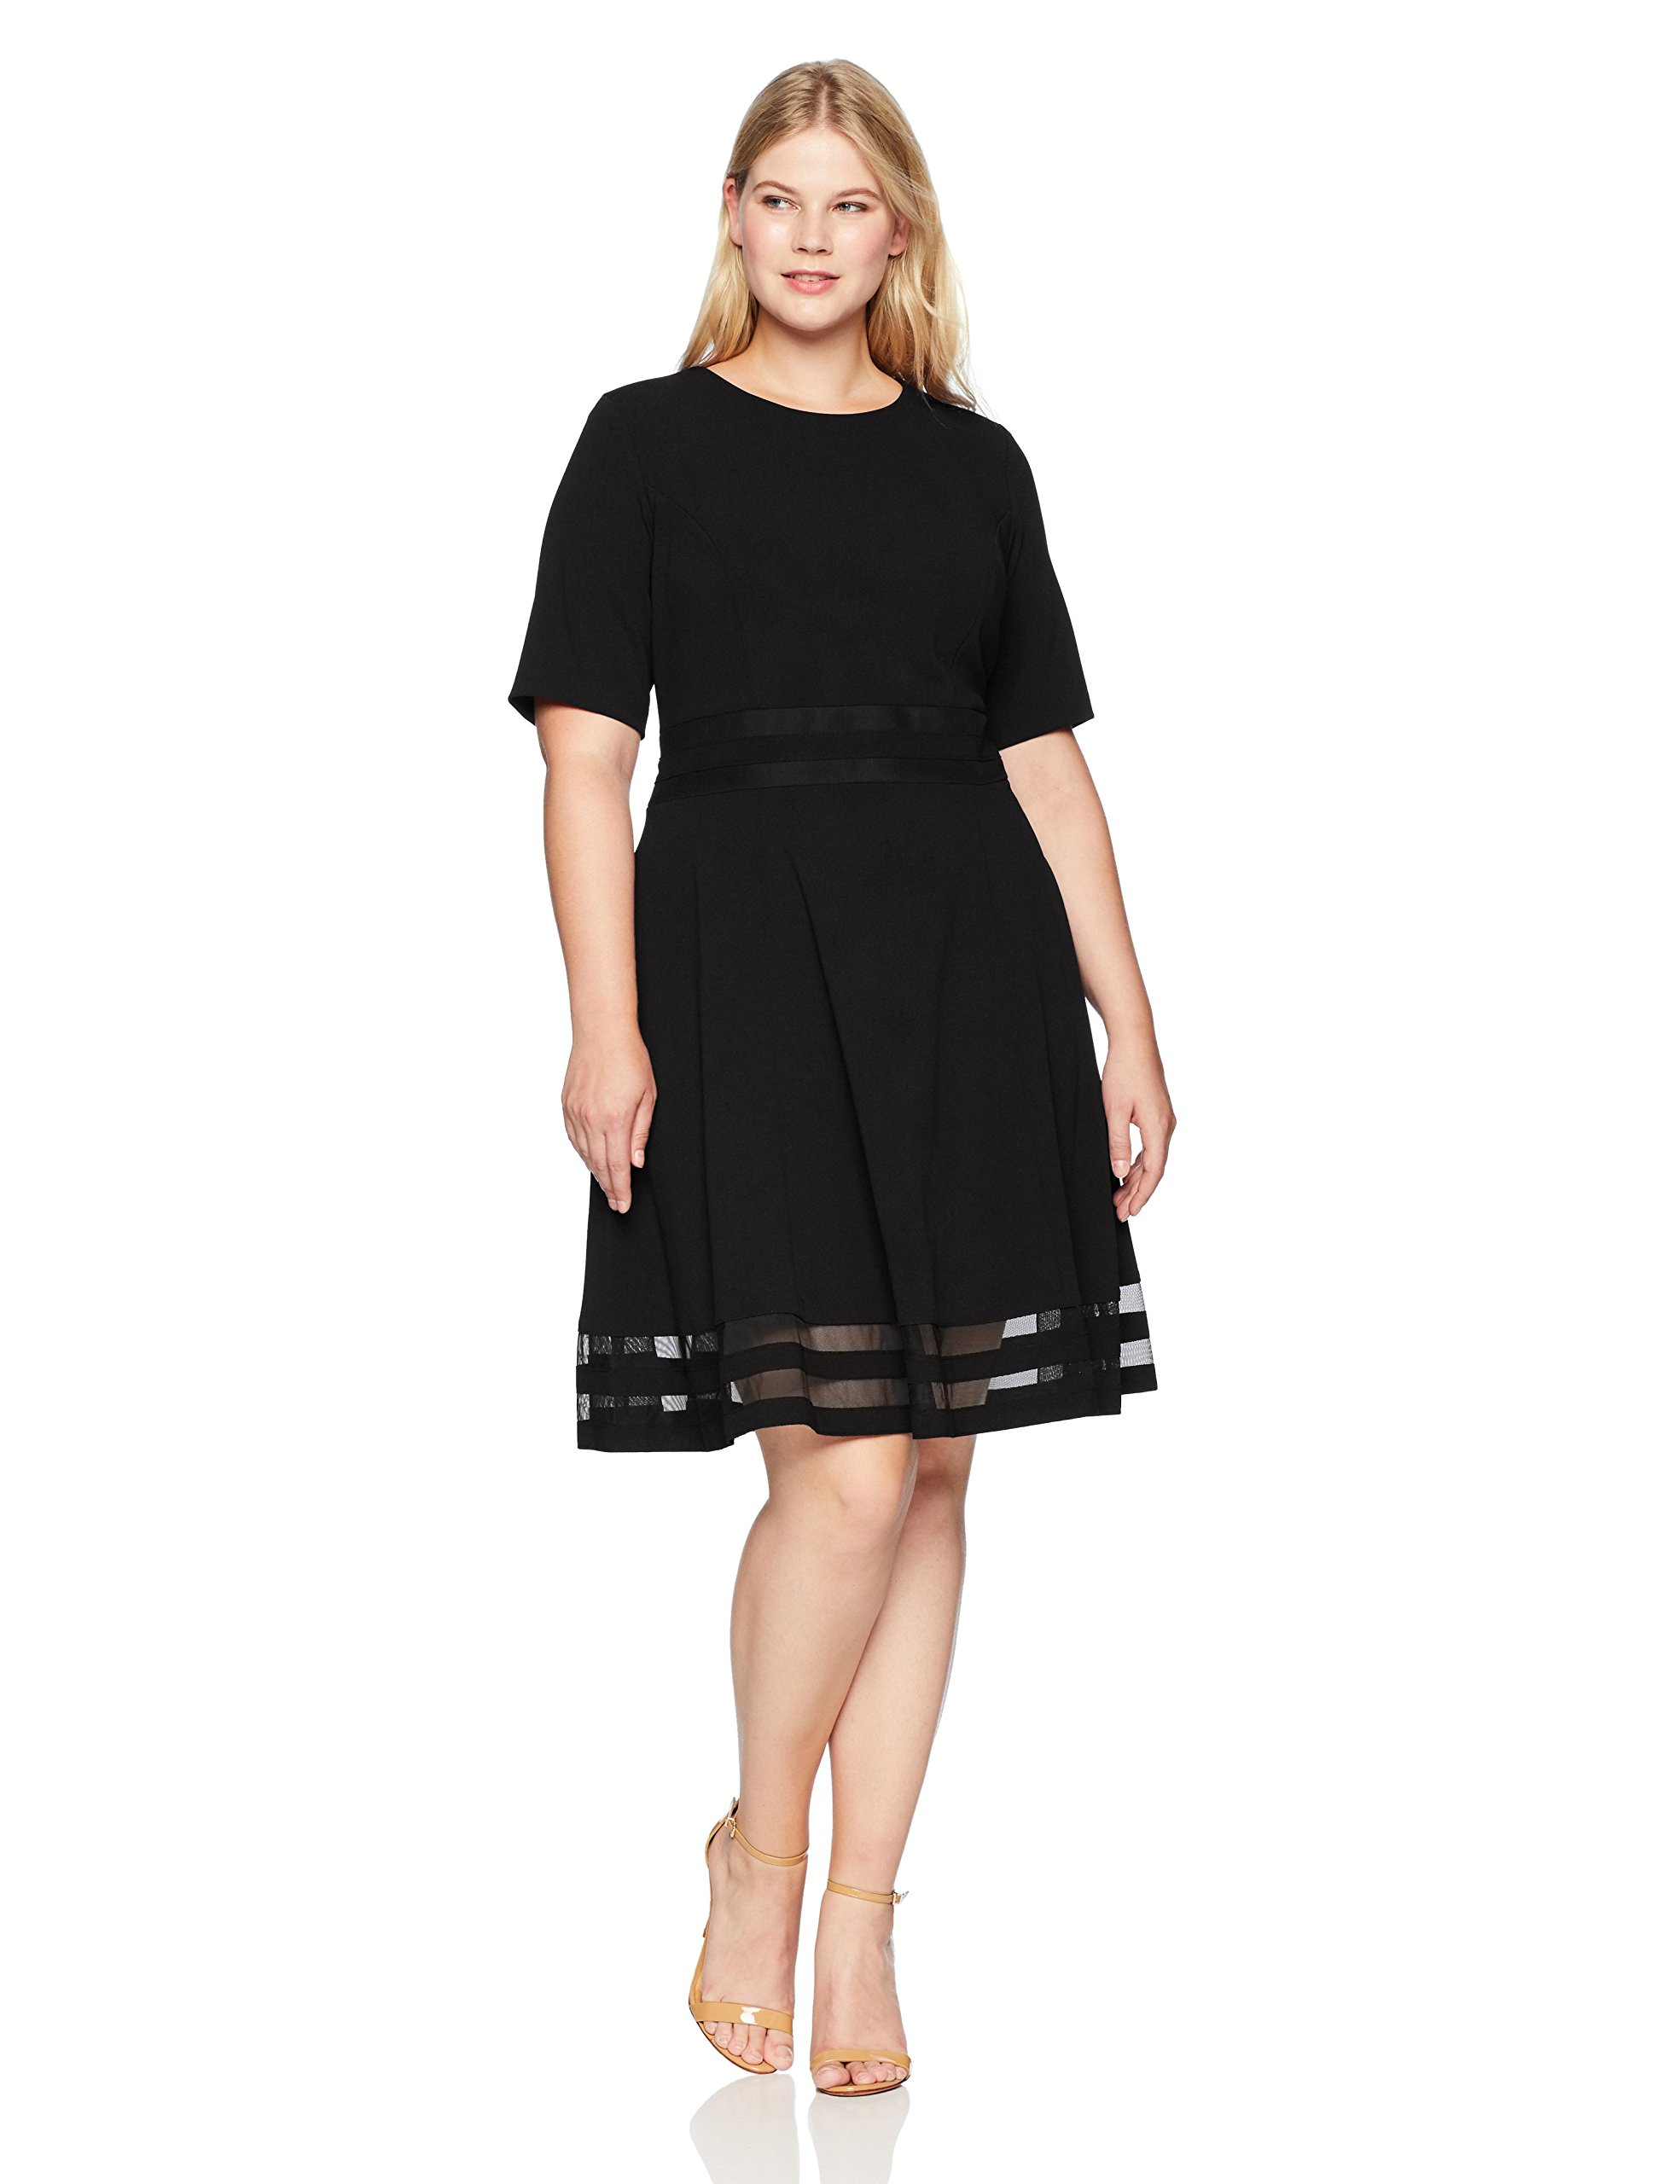 Calvin Klein Women's Plus Size Sleeved Fit and Flare Dress with Sheer Inserts, Black, 16W